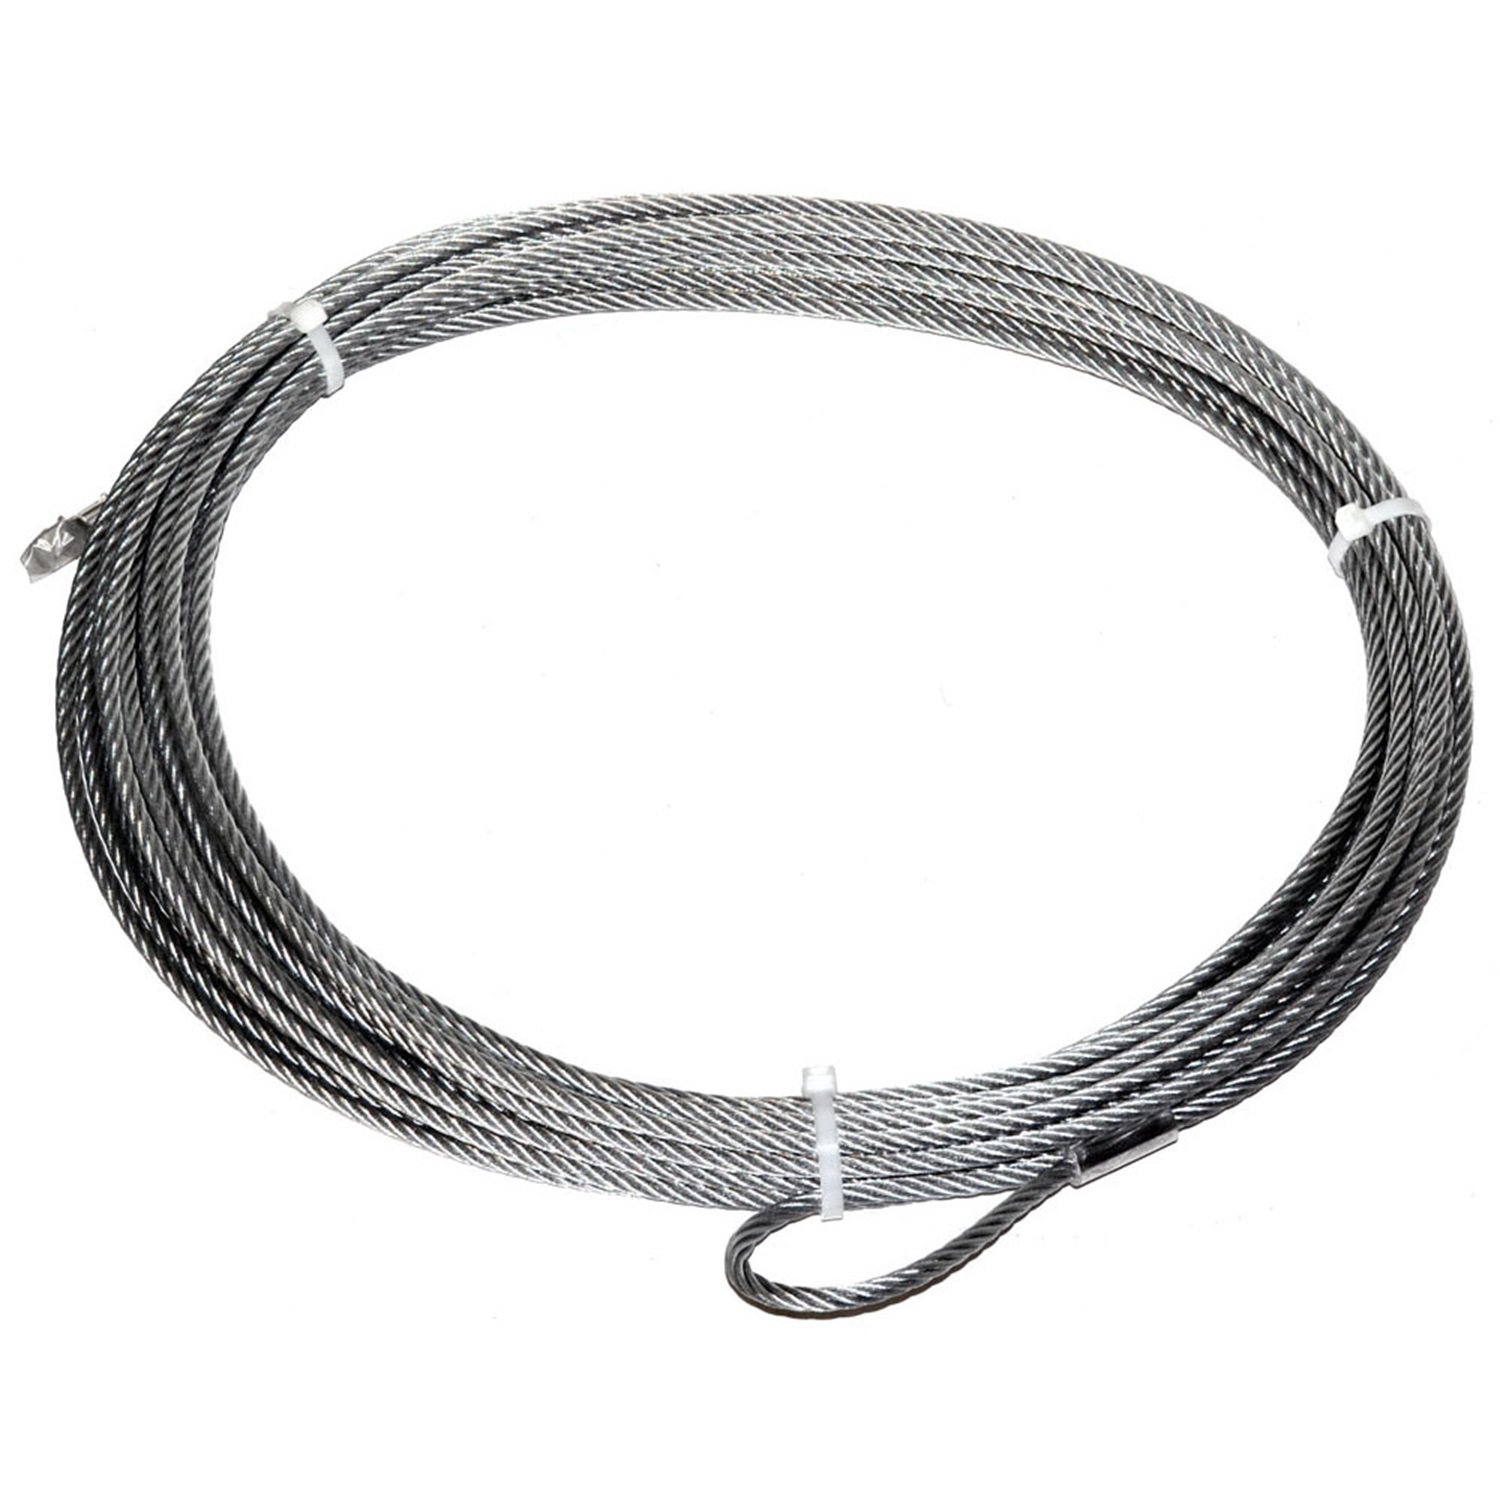 hight resolution of warn 15276 wire rope 5 16 in x 80 ft for winch models m6000 m8000 walmart com